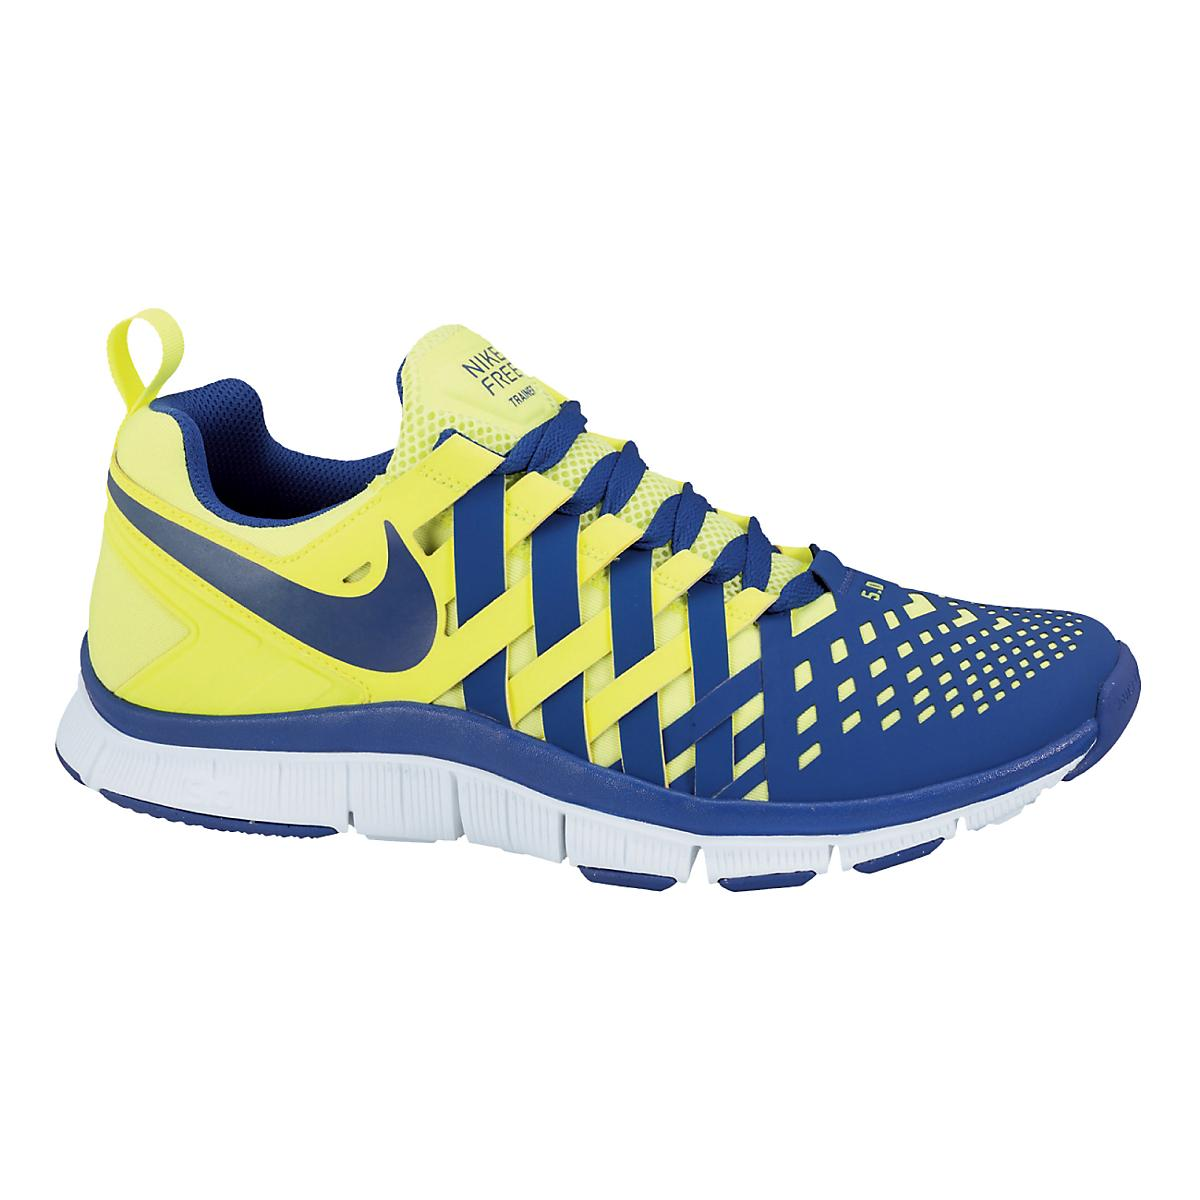 Mens Nike Free Trainer 5.0 Cross Training Shoe at Road Runne